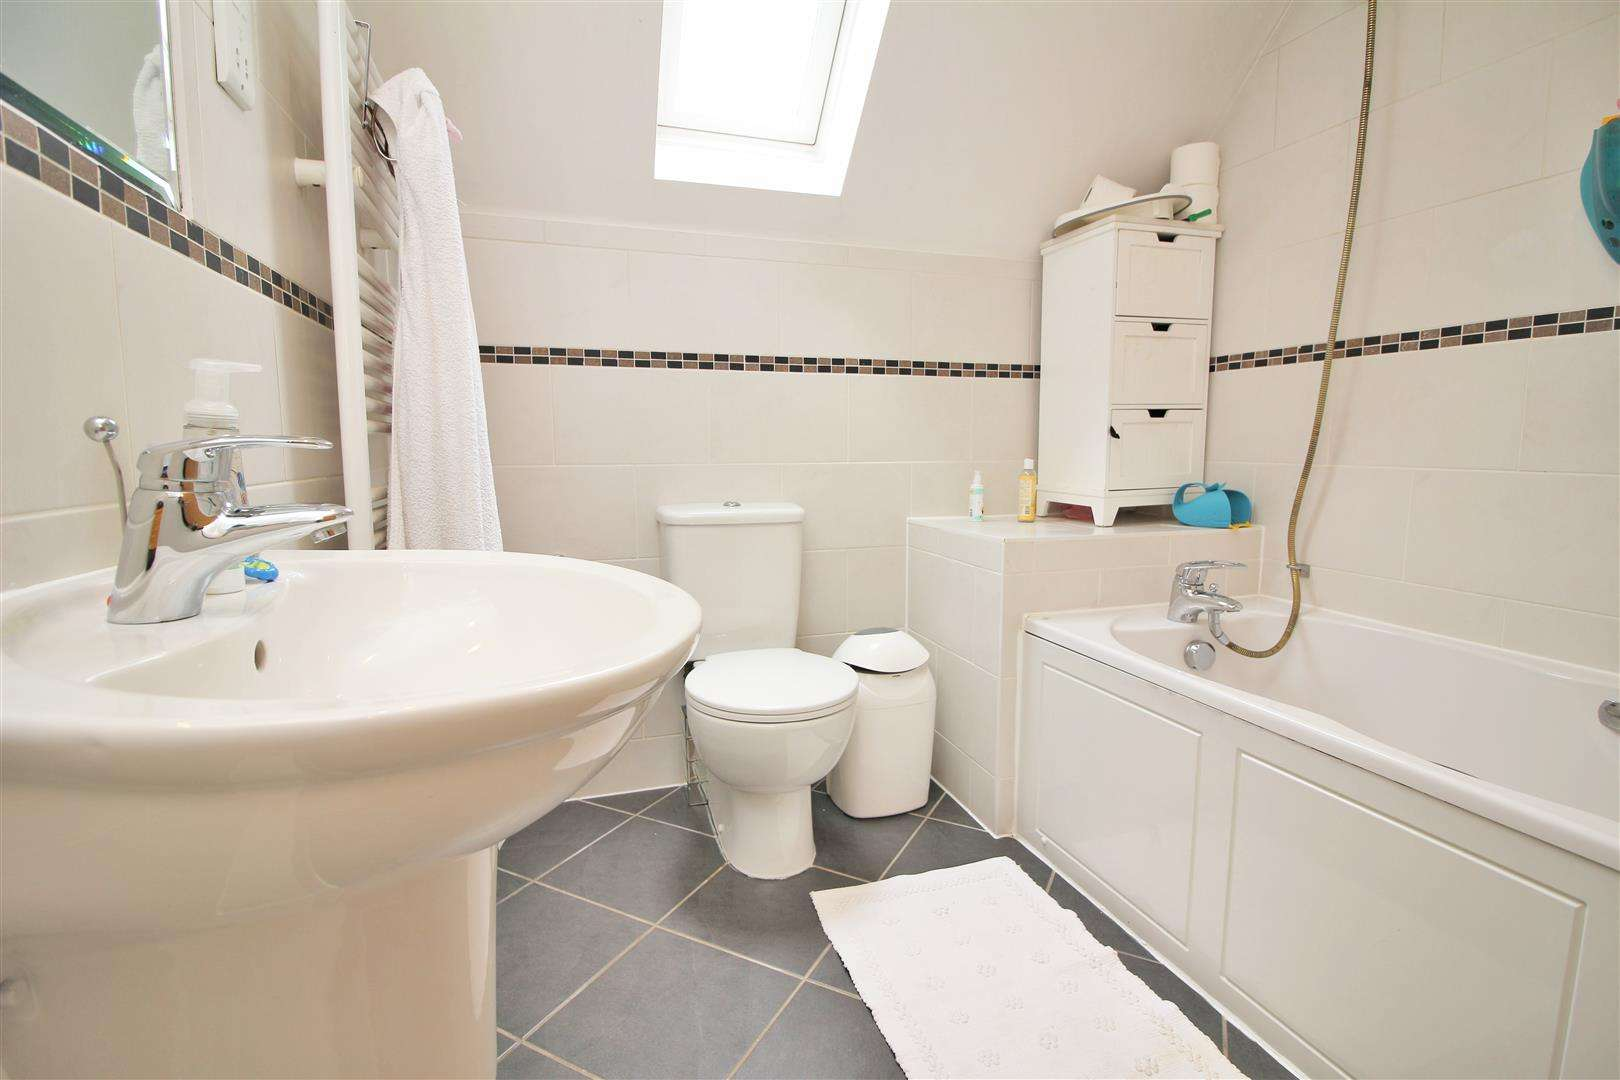 4 bed to rent in Bushey Heath - (Property Image 15)